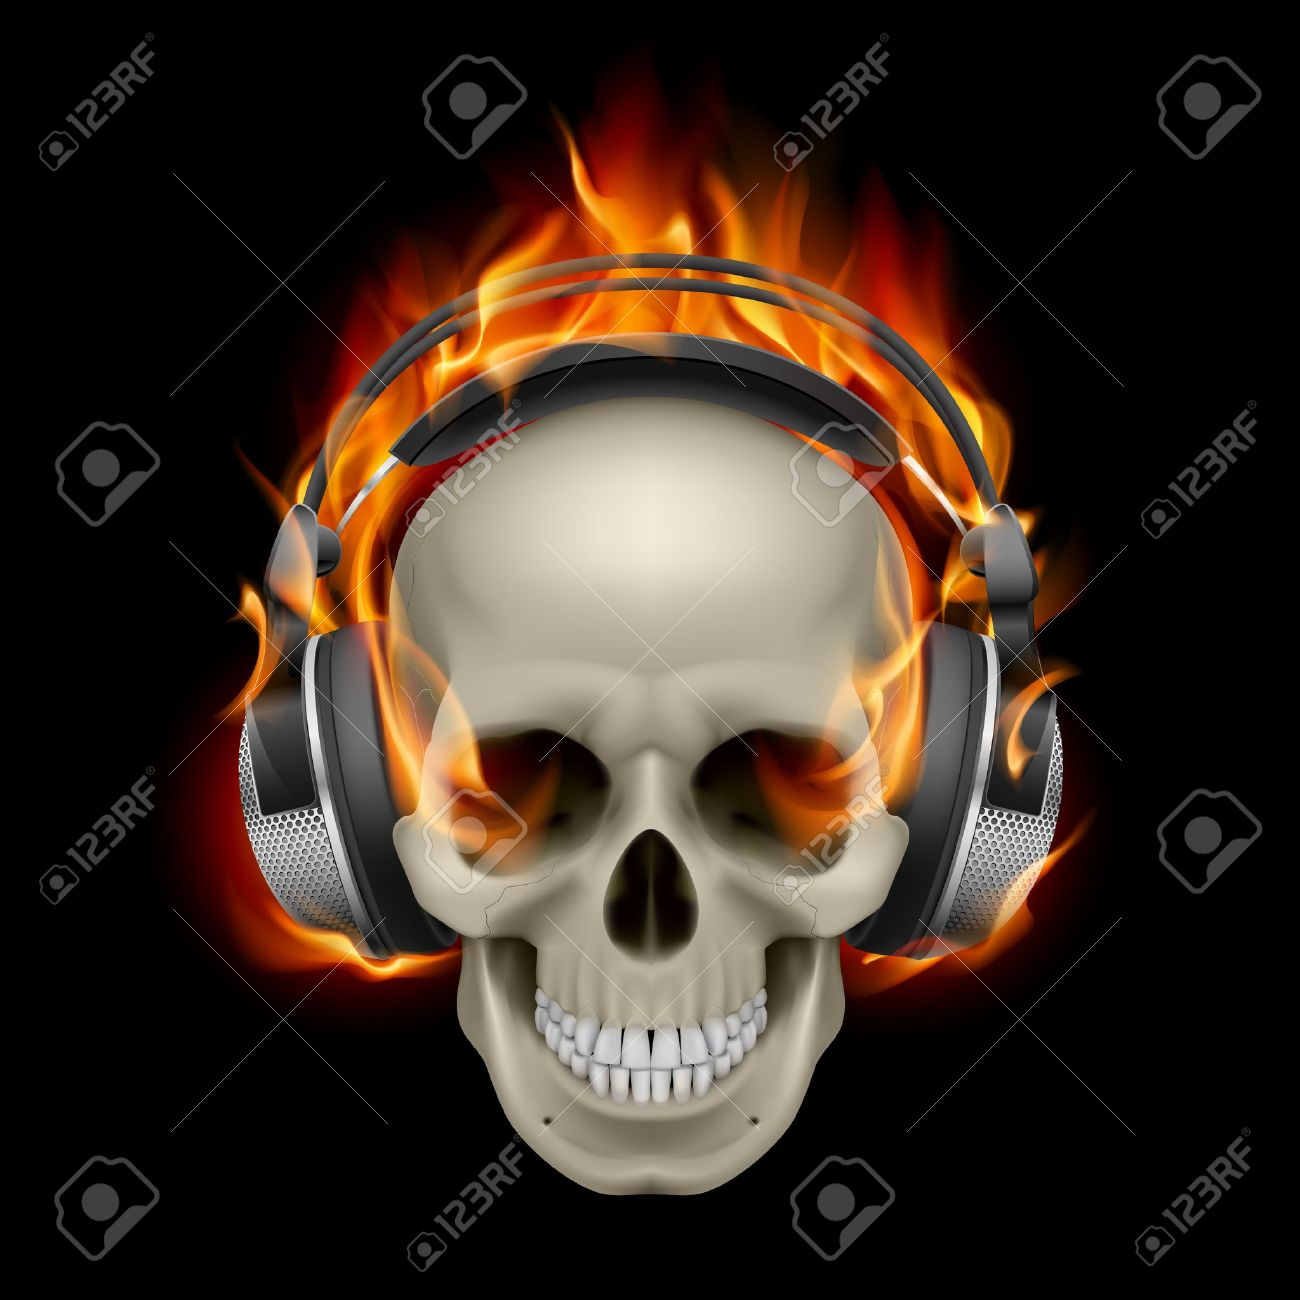 Cool Illustration of Flaming Skull Wearing Headphones Stock Vector - 13329175